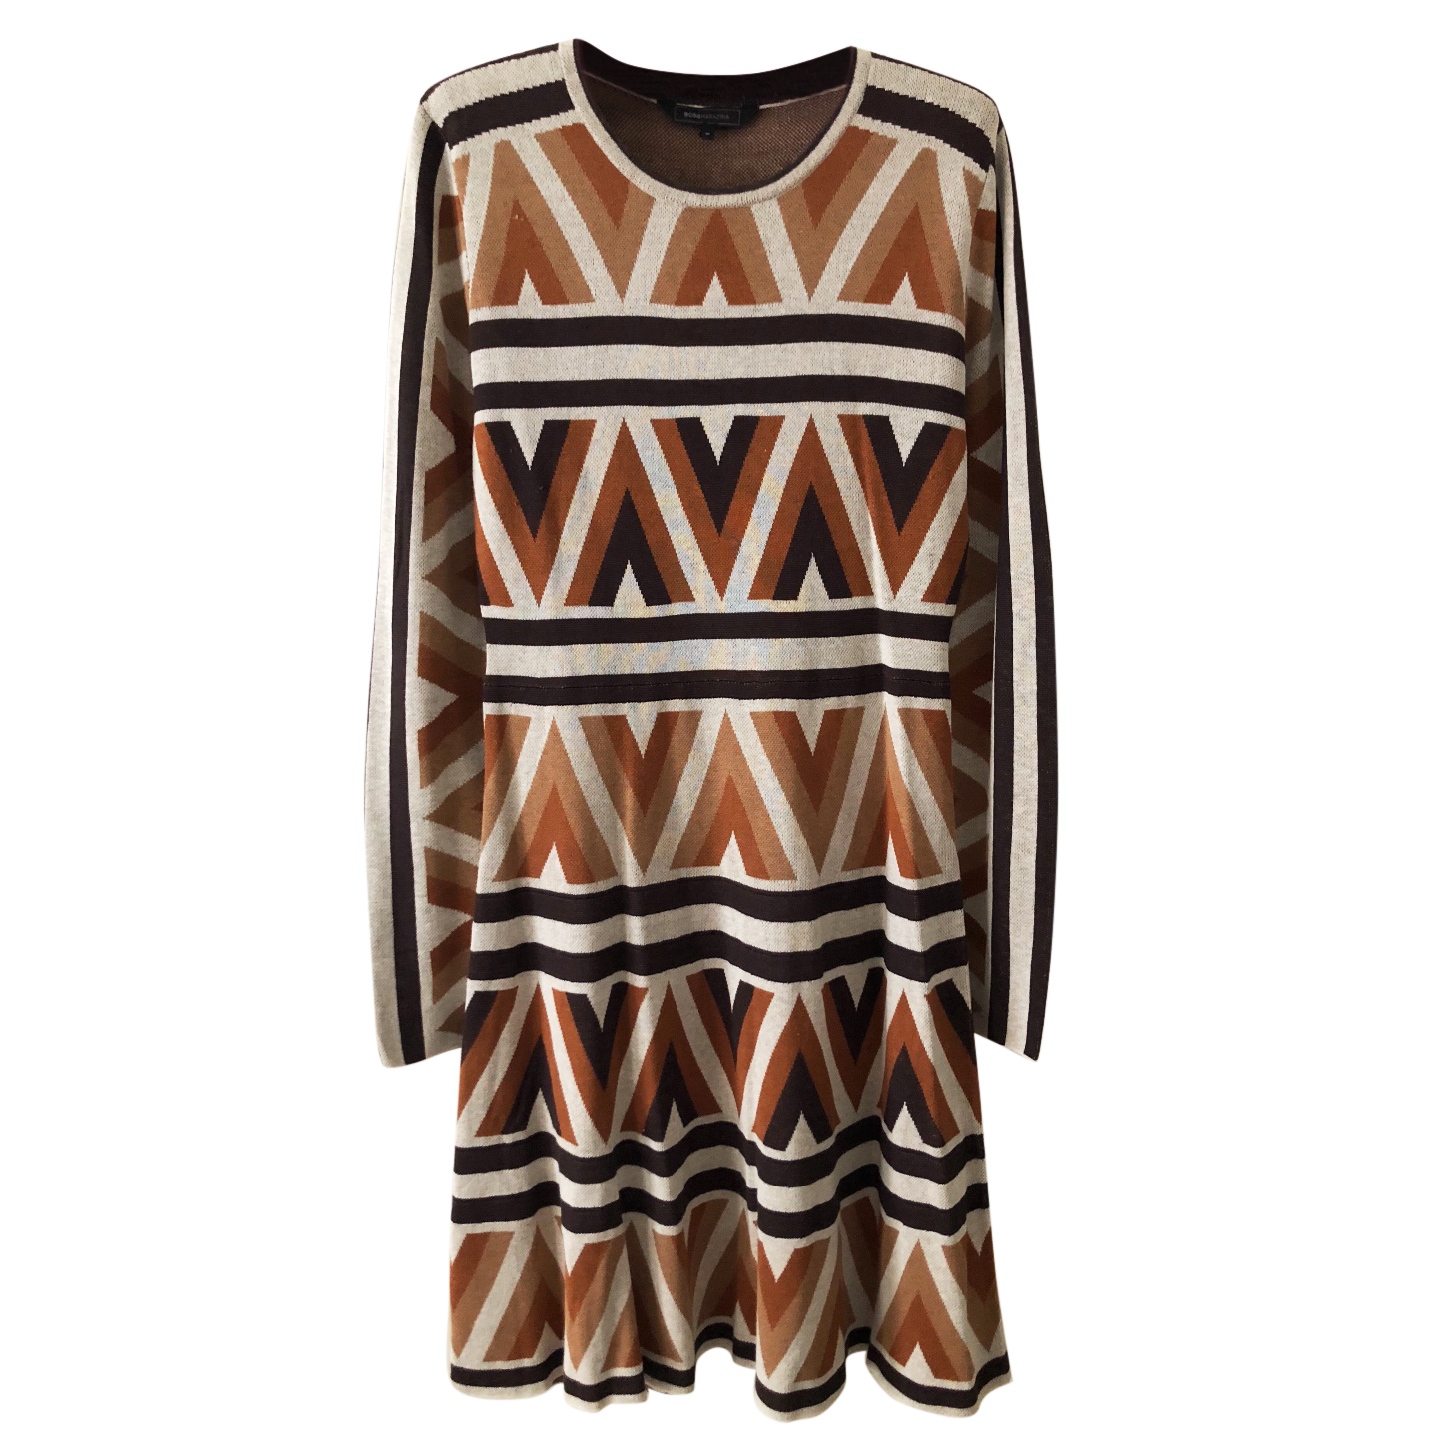 BCBG Max Azria Camel Knitted Scandi Dress